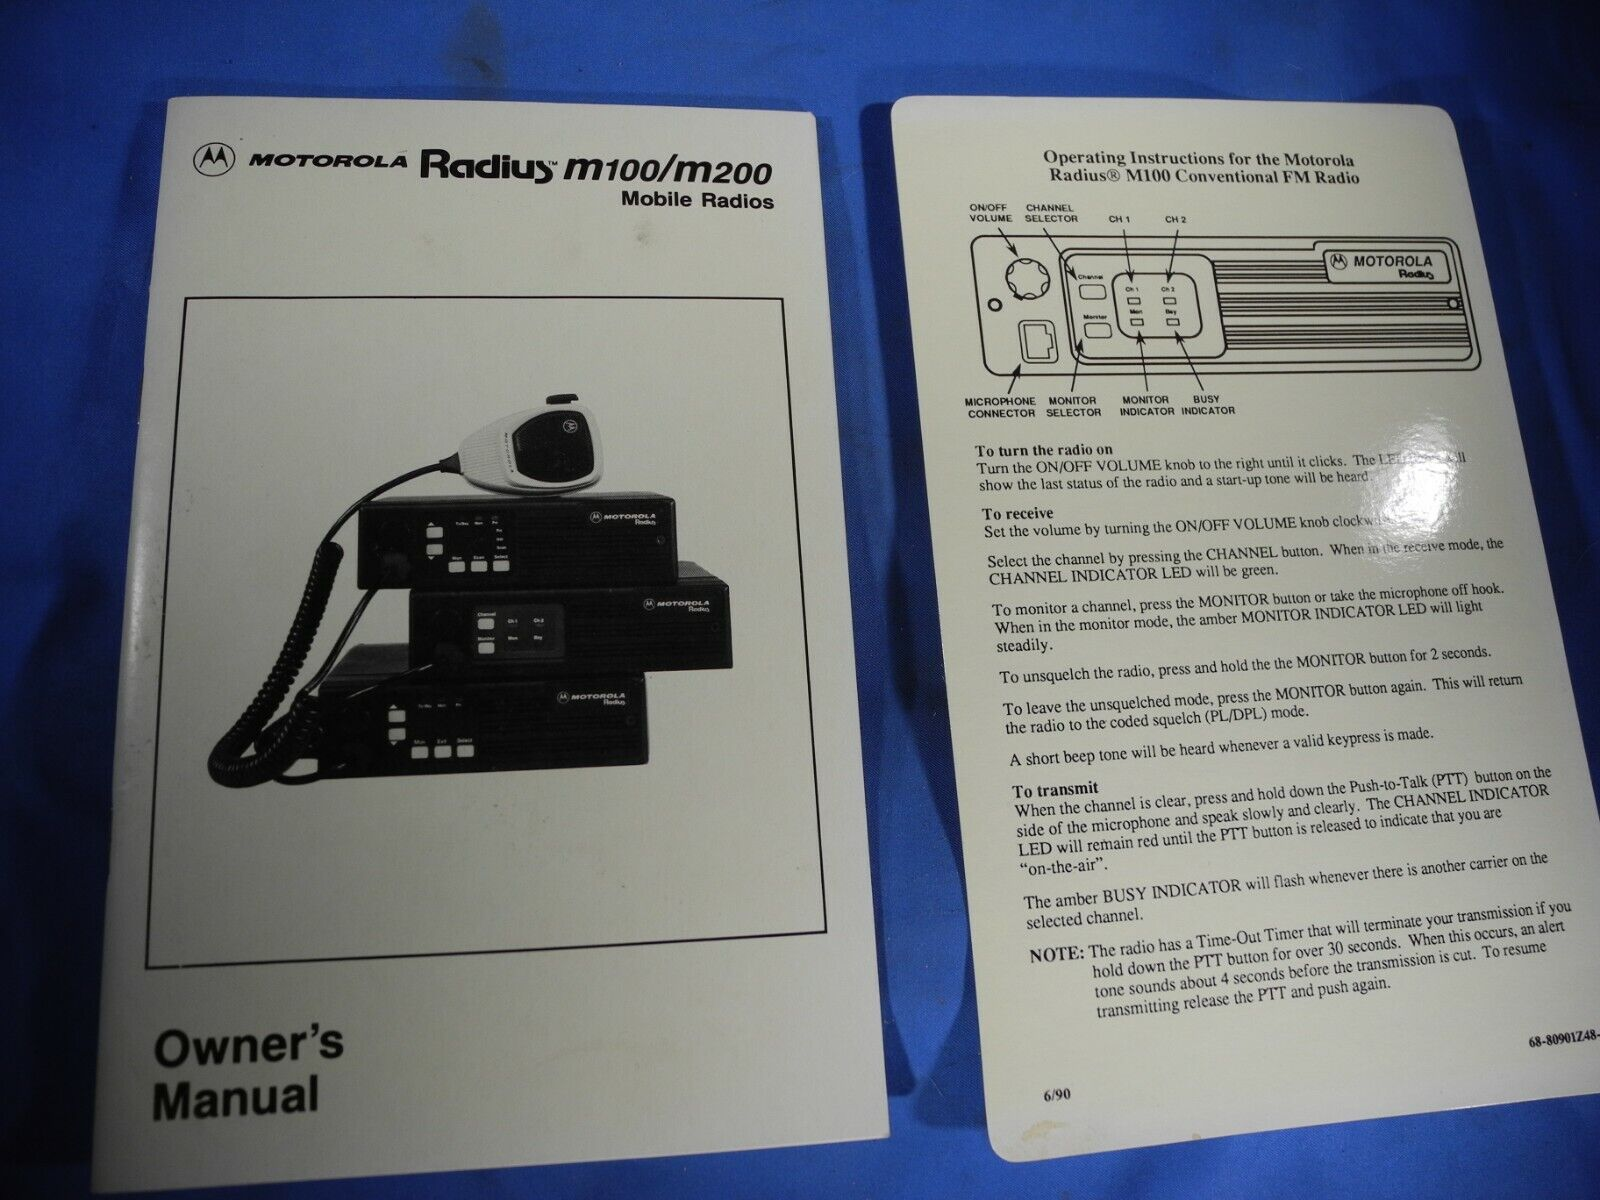 Owner's Manual Motorola Radius m100/m200 Mobile Radios W/ Card. Available Now for 19.99